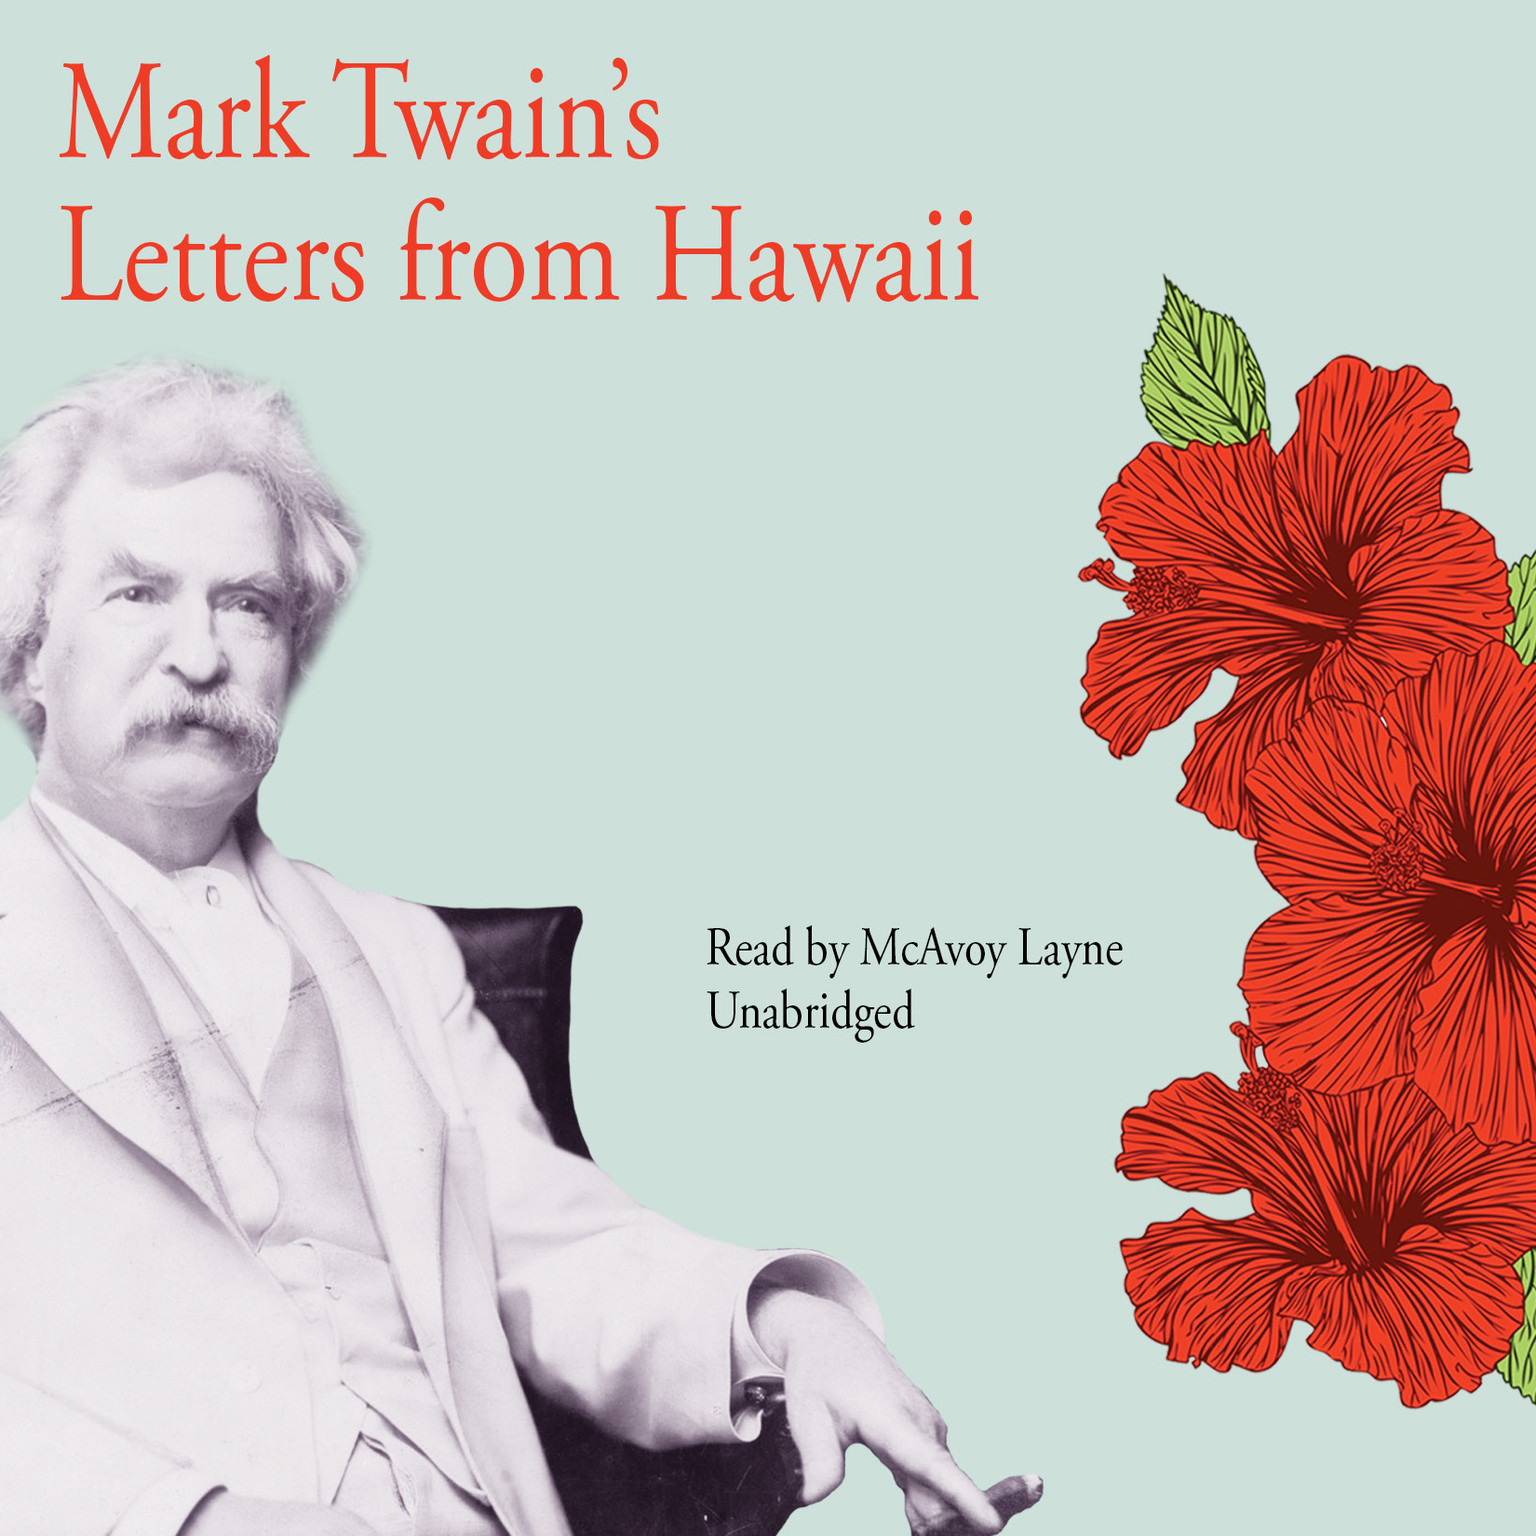 mark twain essays list He outlines what he considers to be quality writing in several letters and essays friend who corresponded with mark twain throughout his life list.